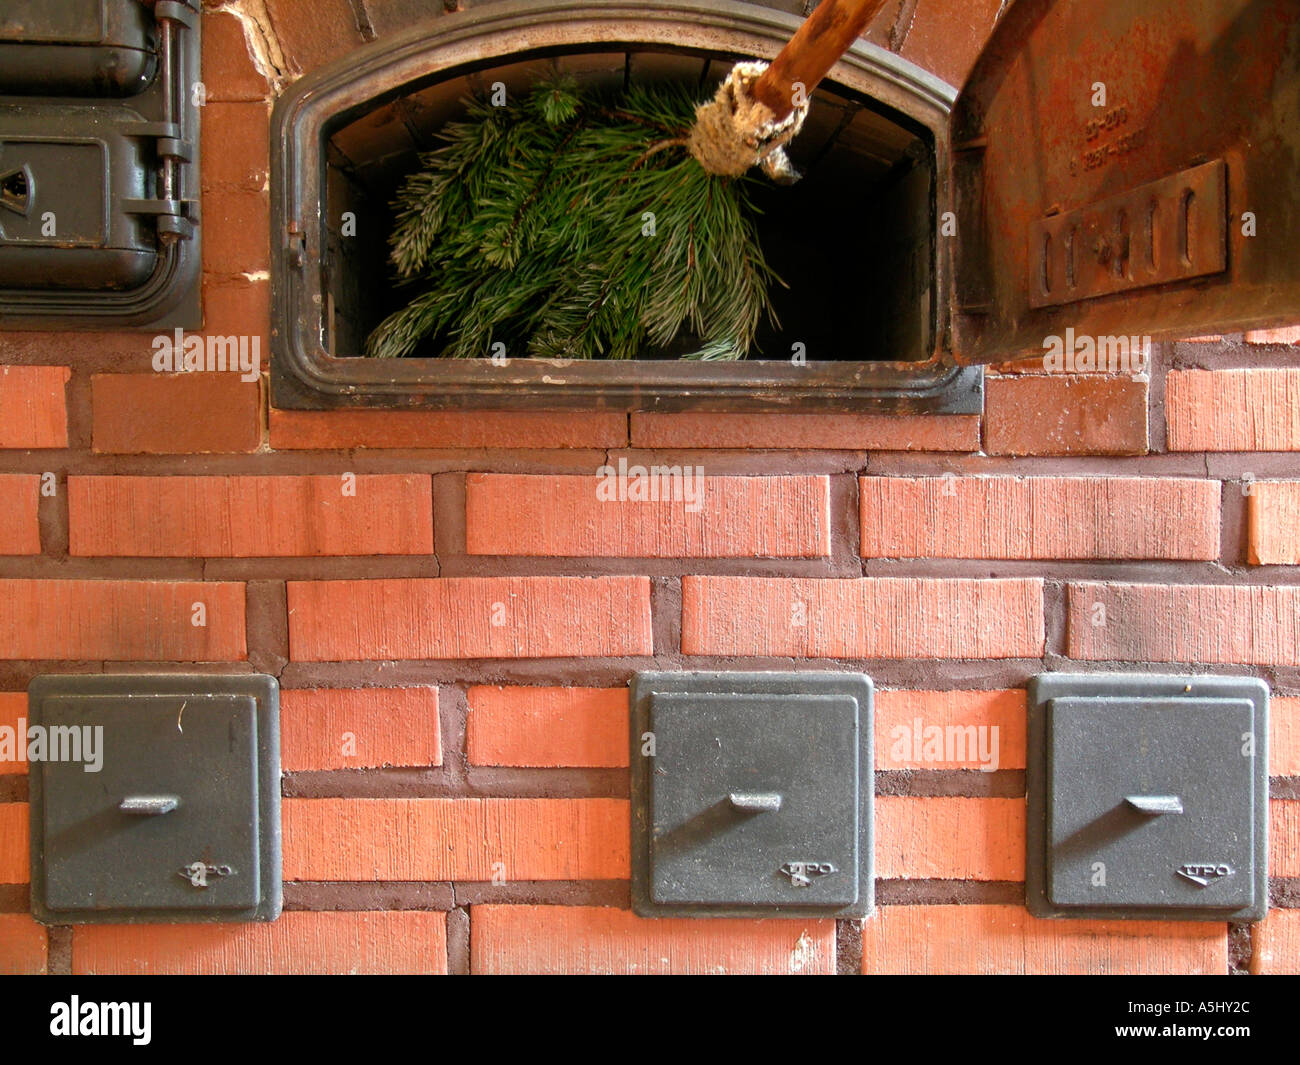 PR Cleaning A Baking Oven Of An Old Wood Heated Kitchen Stove With Braches Pines